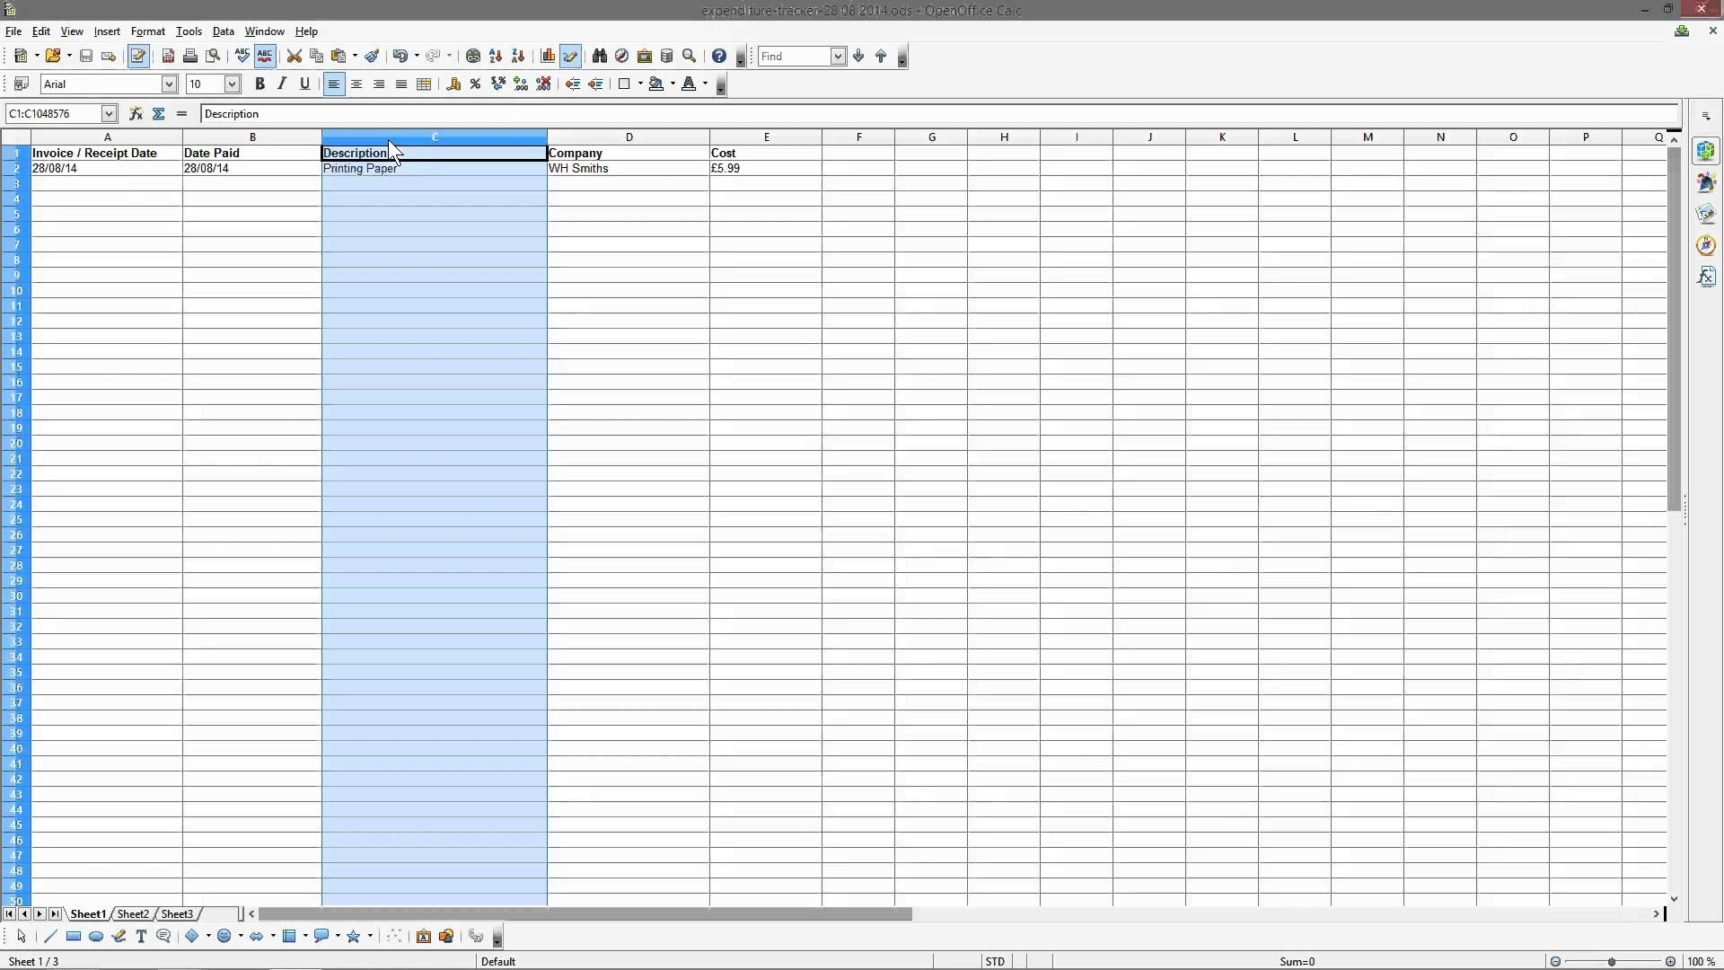 Income And Expenses Spreadsheet For Small Business For Small Business Income Expense Spreadsheet Template